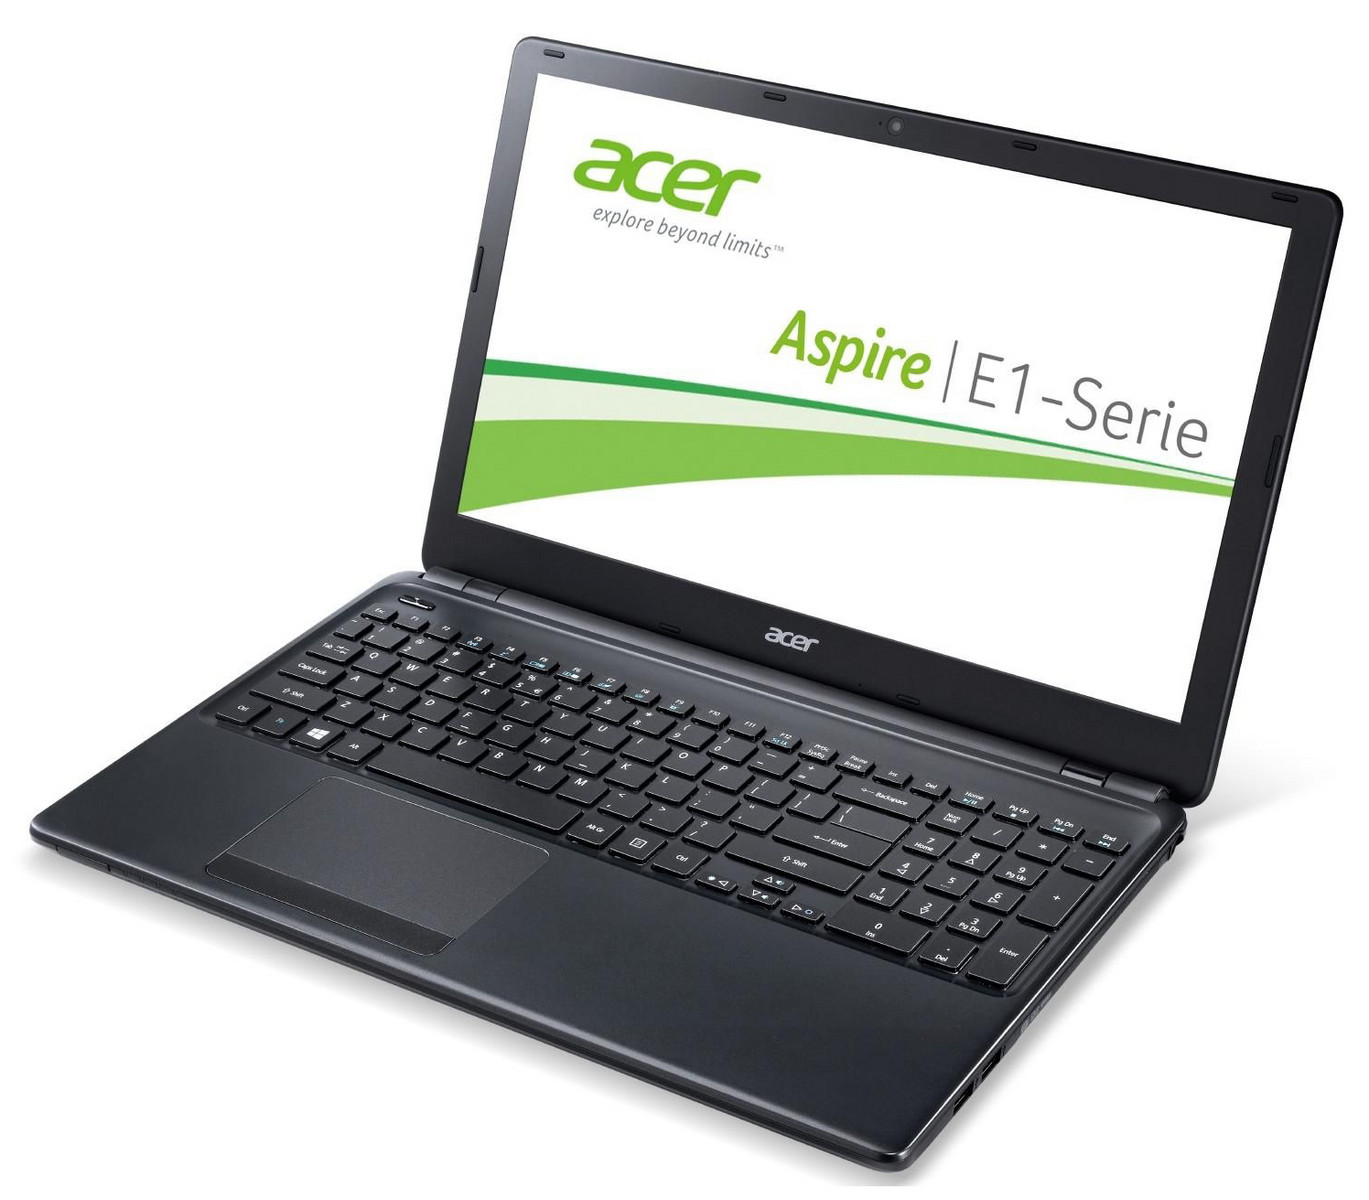 ACER ASPIRE E1-572PG BROADCOM CARD READER DRIVER FOR WINDOWS MAC